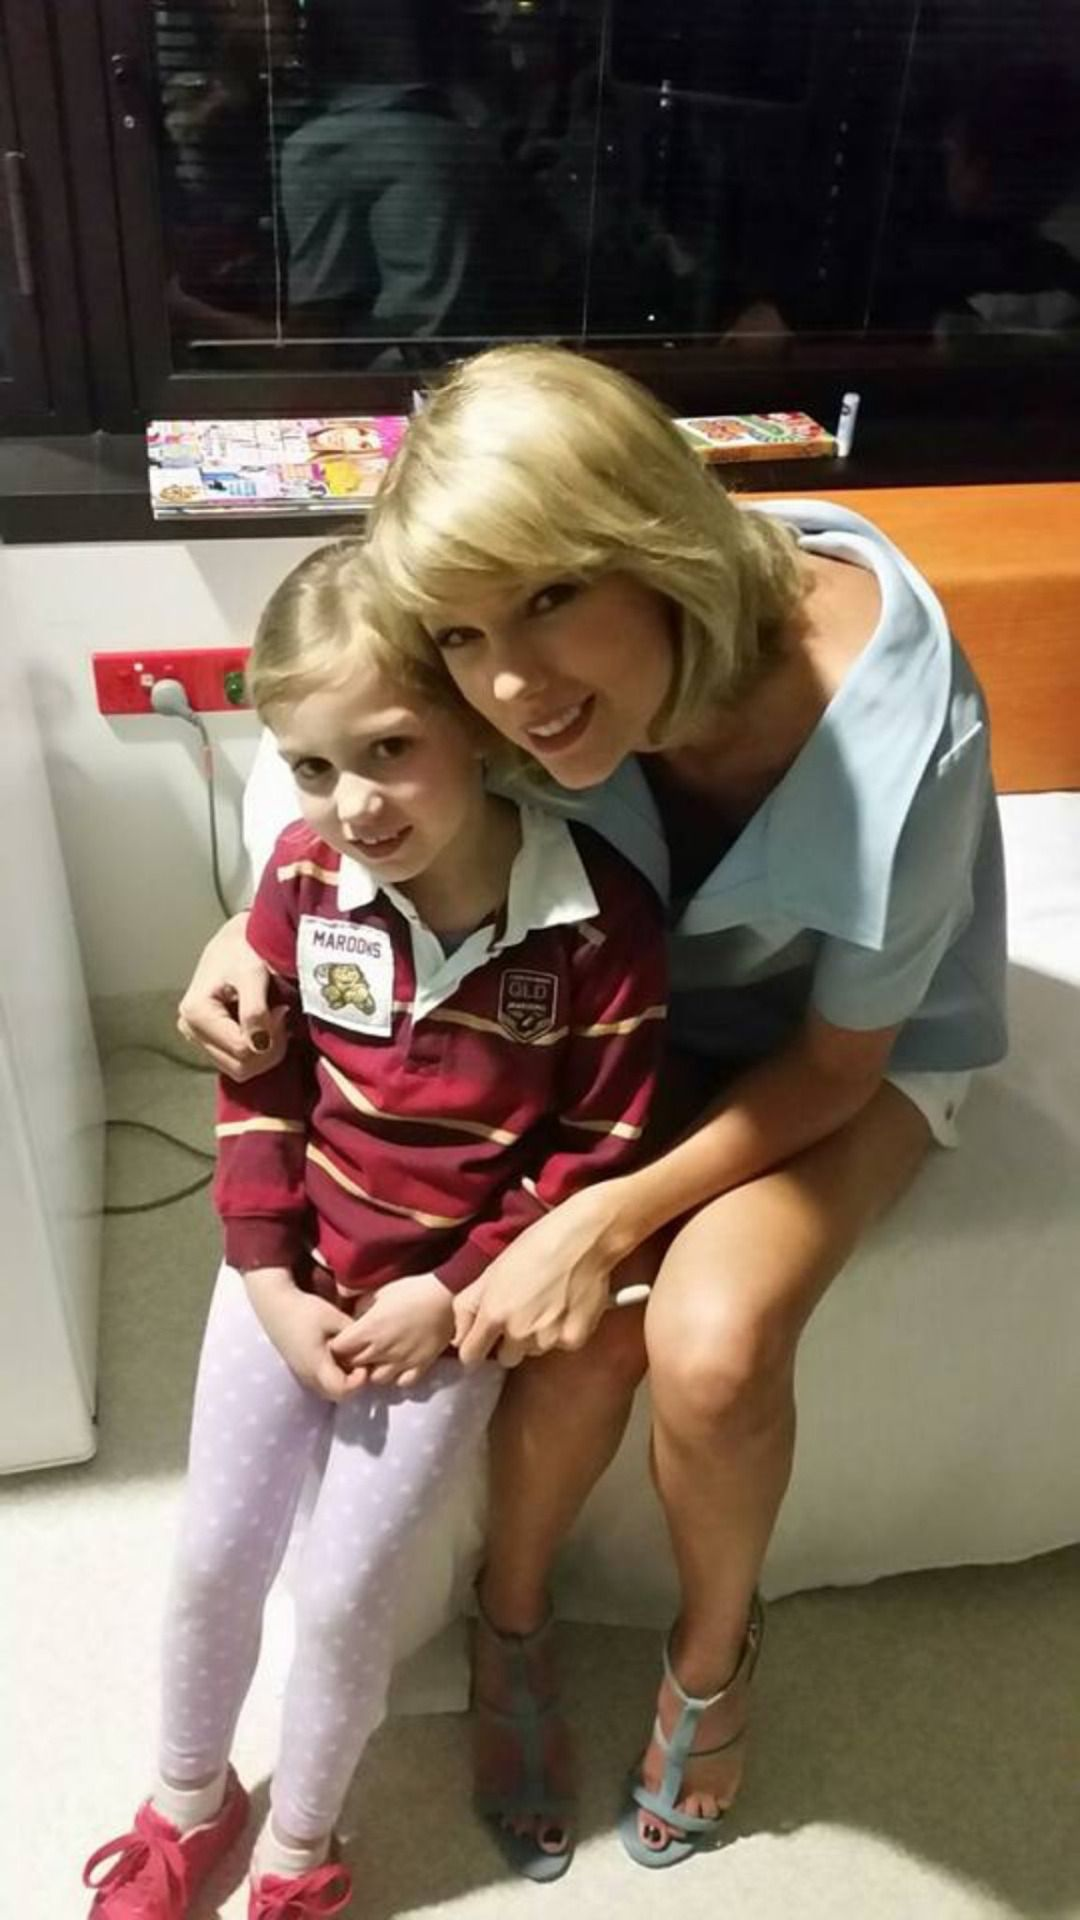 Taylor with a fan at Lady Cilento Children's Hospital in Queensland, Australia 7.12.16